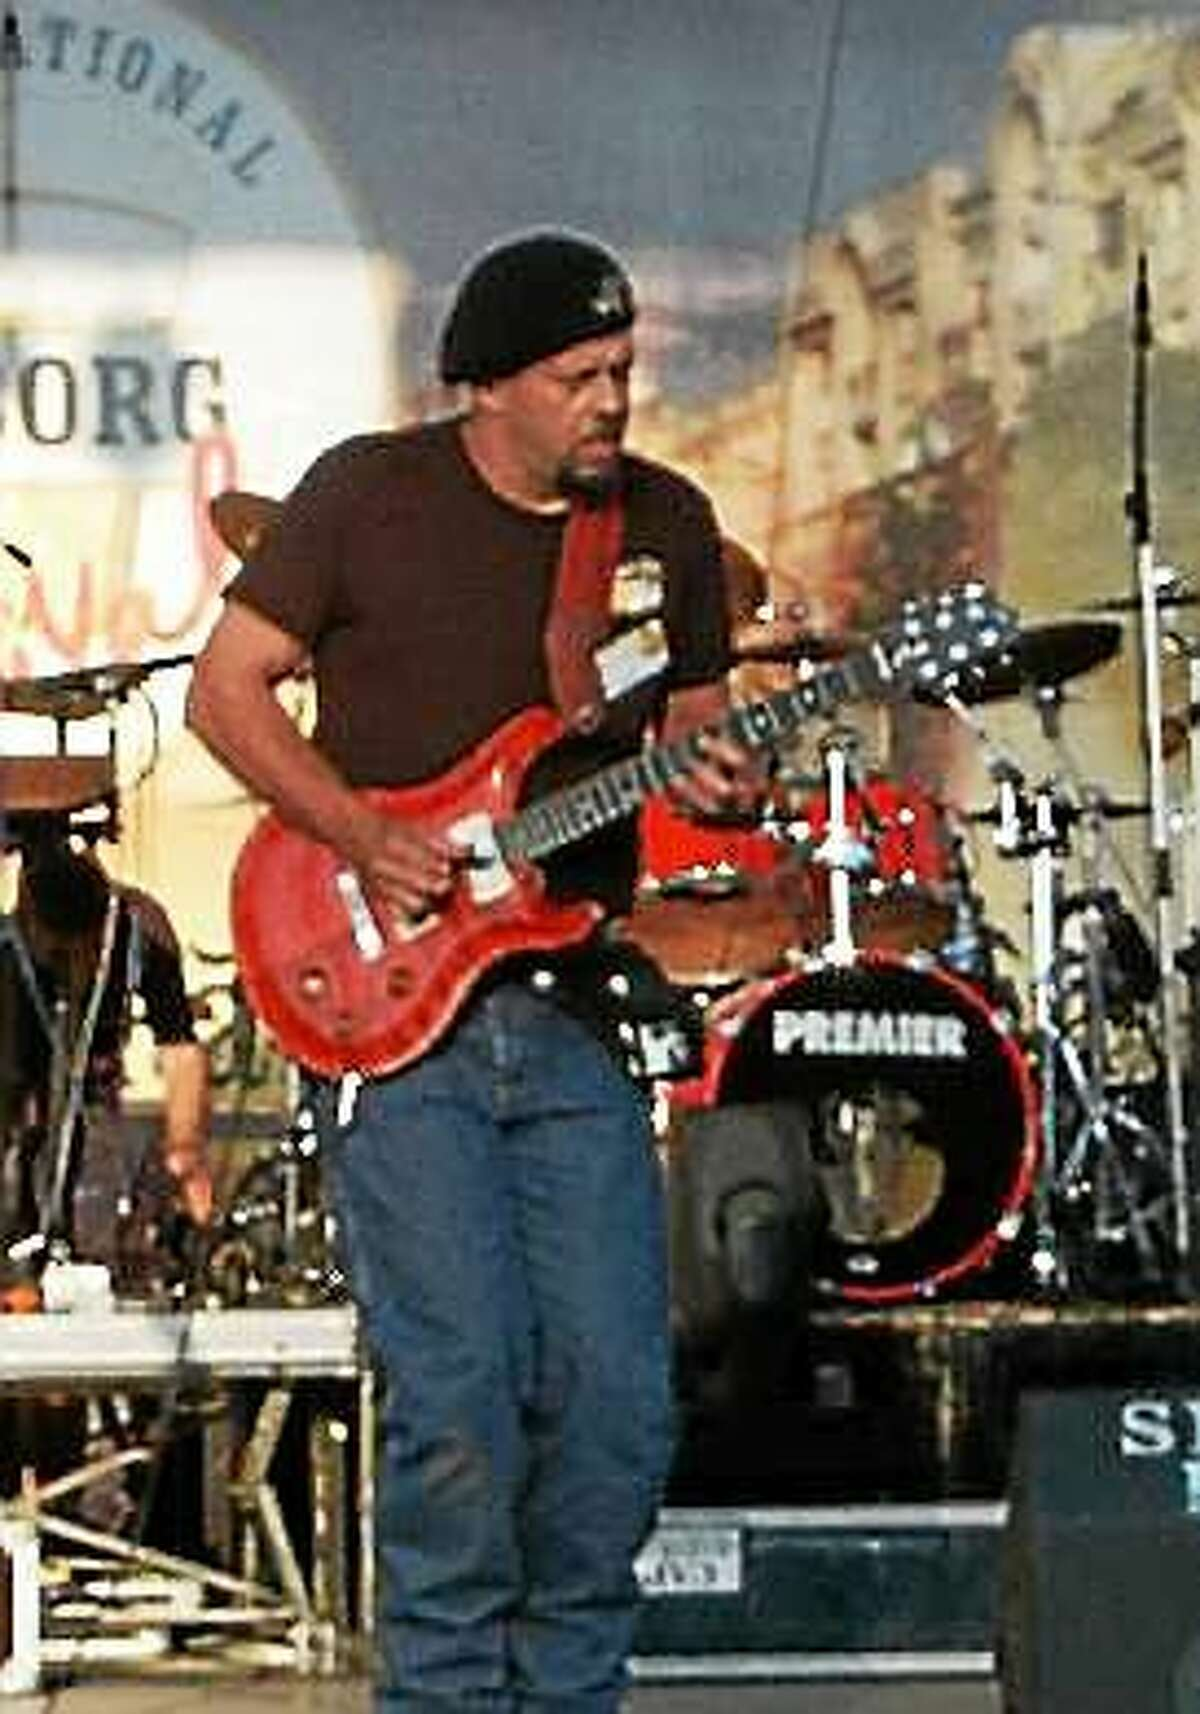 Photo courtesy of Chris Tofield Chris Tofield winds down his visit to Connecticut with gigs this weekend.